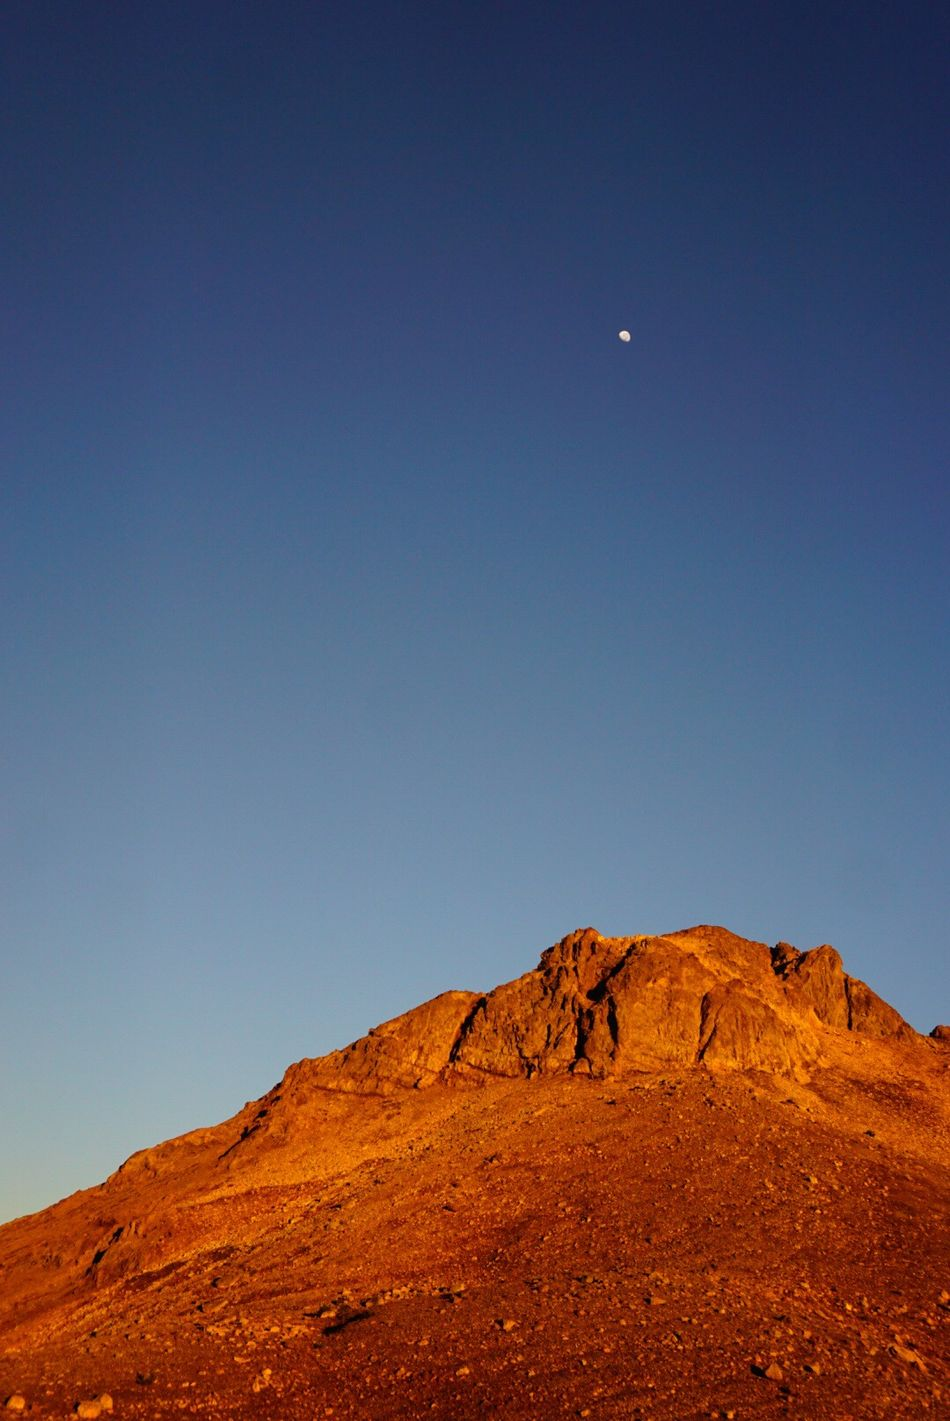 Life on Mars Moon Outdoors Landscape Mountain Low Angle View Beauty In Nature Physical Geography Sunrise Scenics Nature Astronomy Clear Sky Geology Arid Climate Eye4photography  Nature EyeEm Nature Lover El Bolson Argentina No People